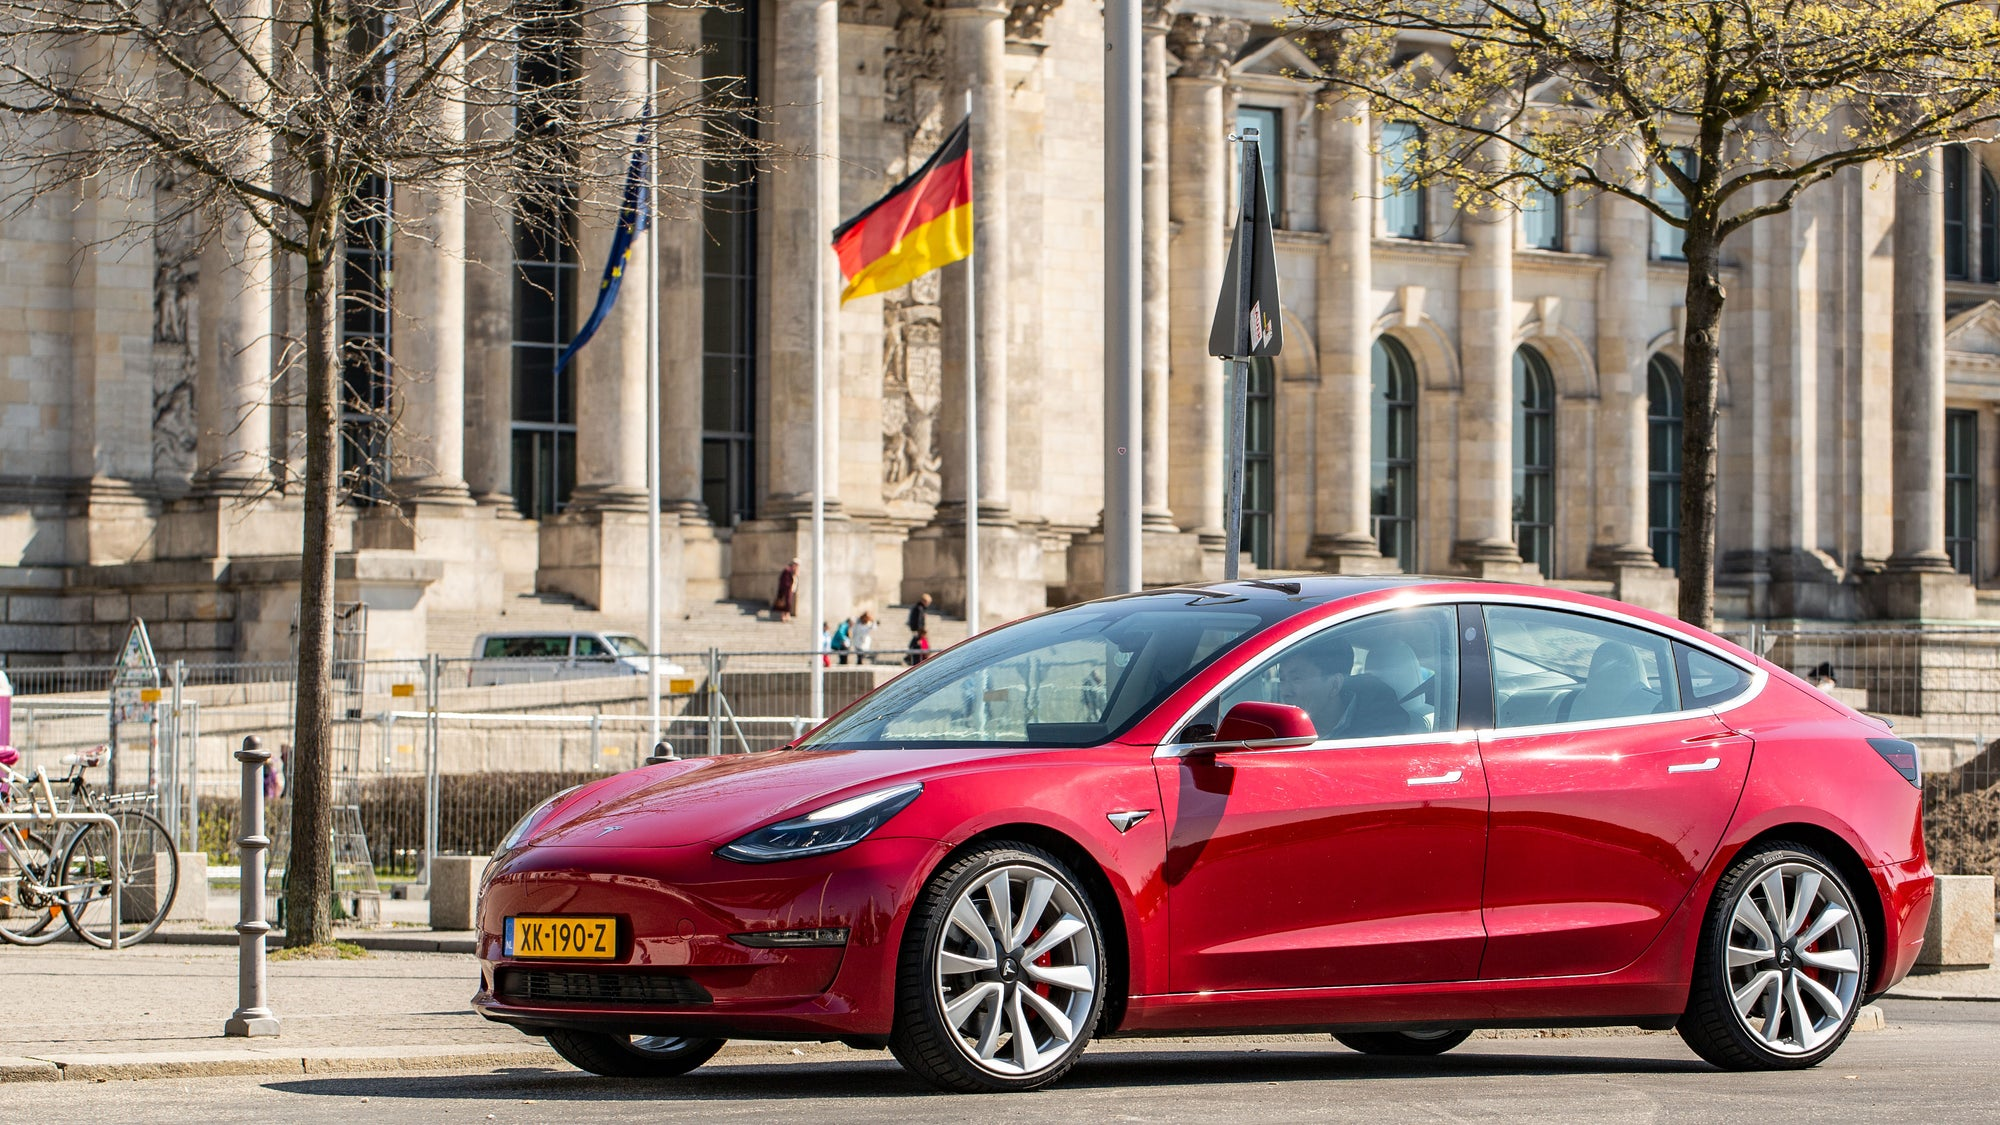 Tesla Model 3 is August's Best-Selling EV in Germany